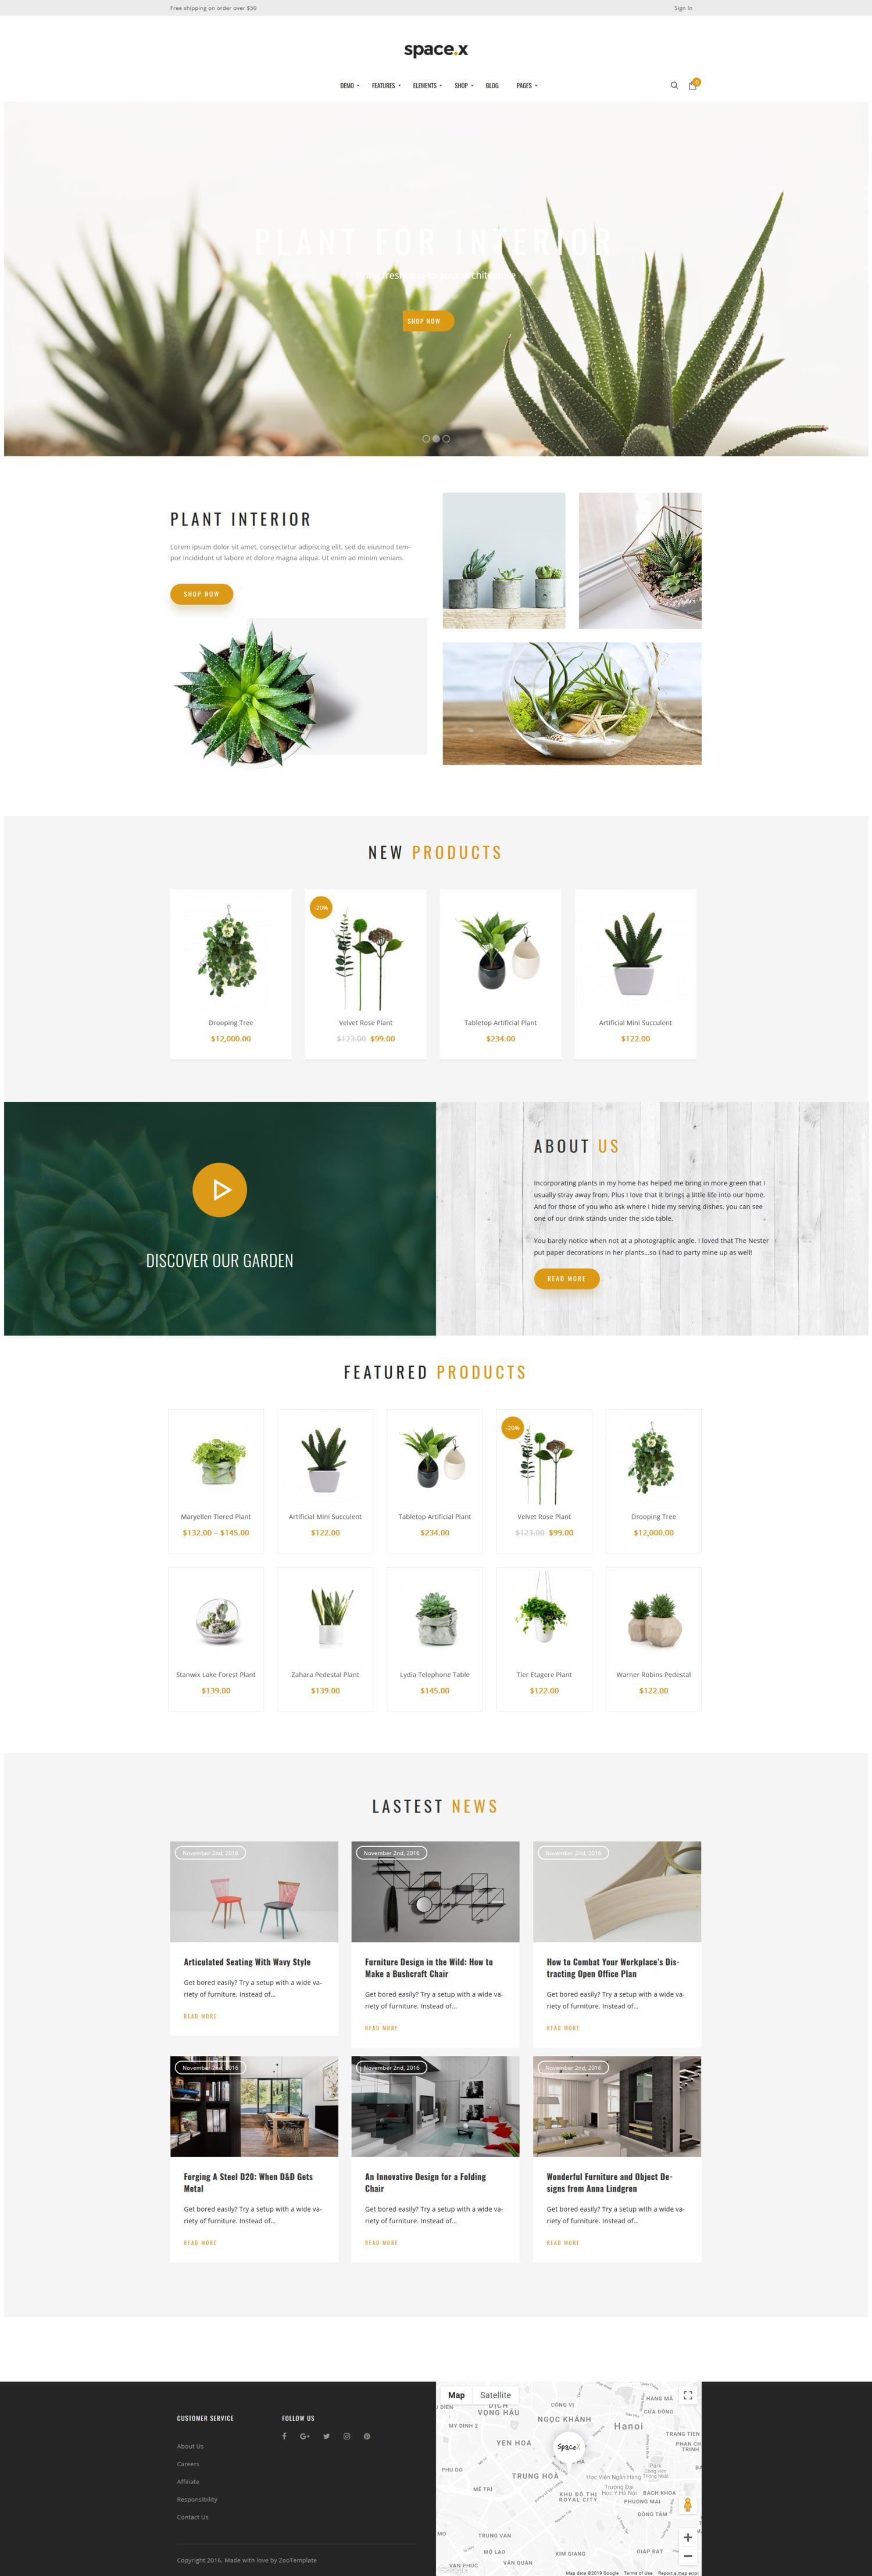 WooCommerce Theme Installation & Demo Setup  by CoralixThemes - 115522